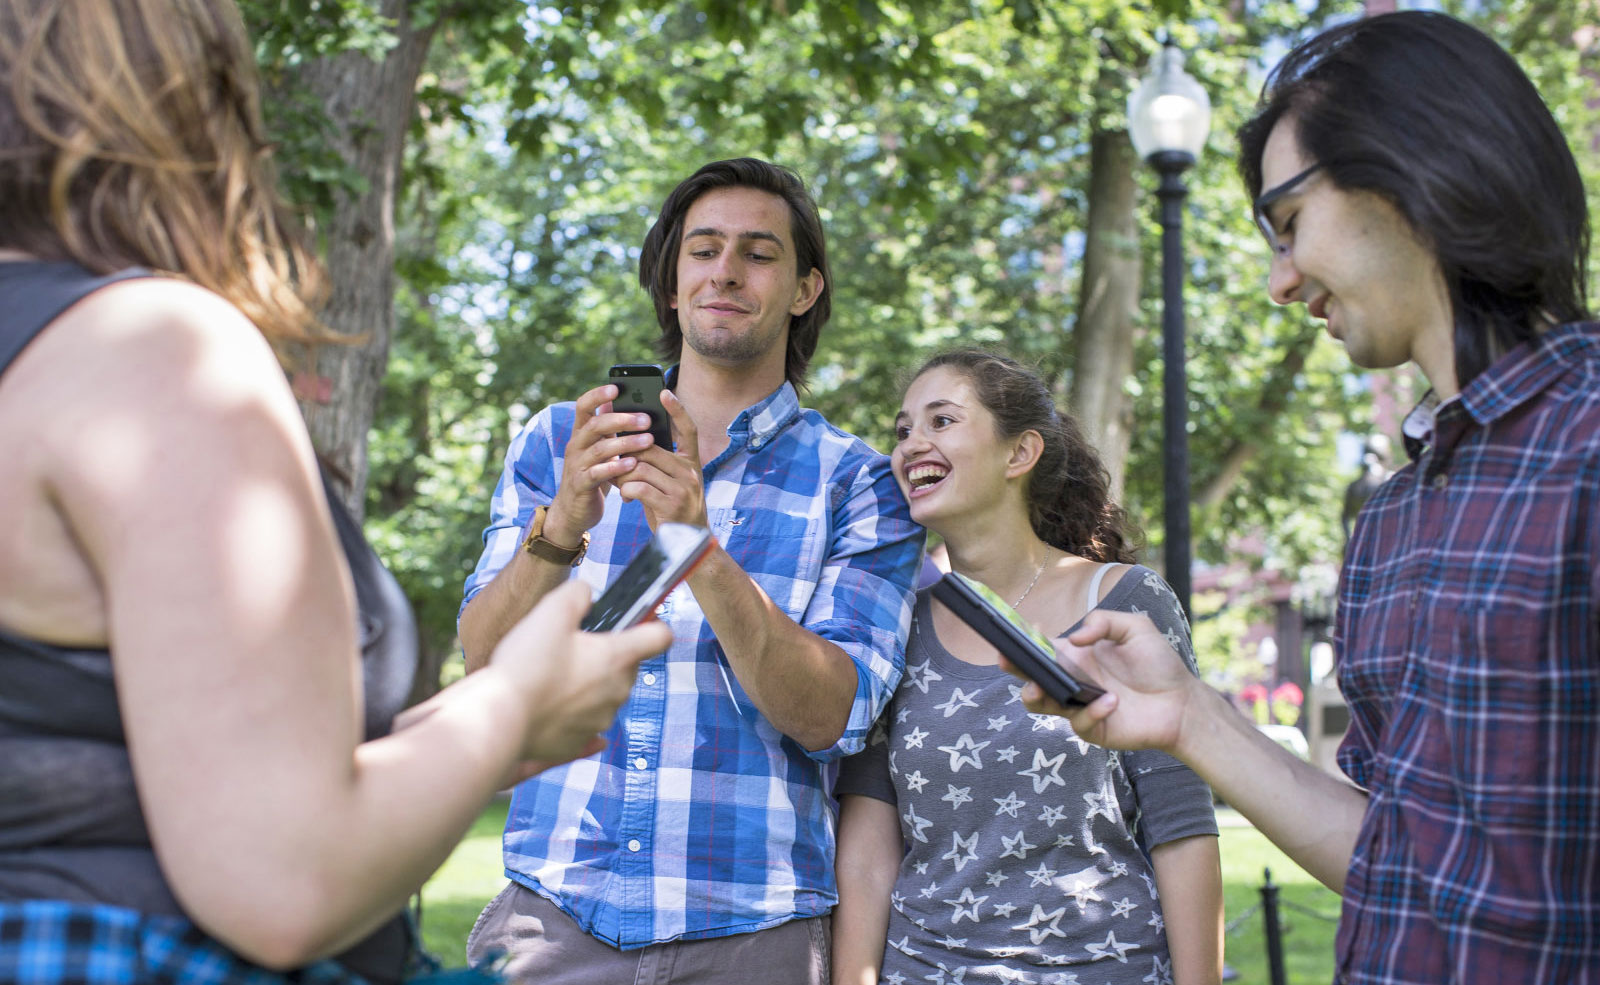 Pokemon Go's mental health benefits are real